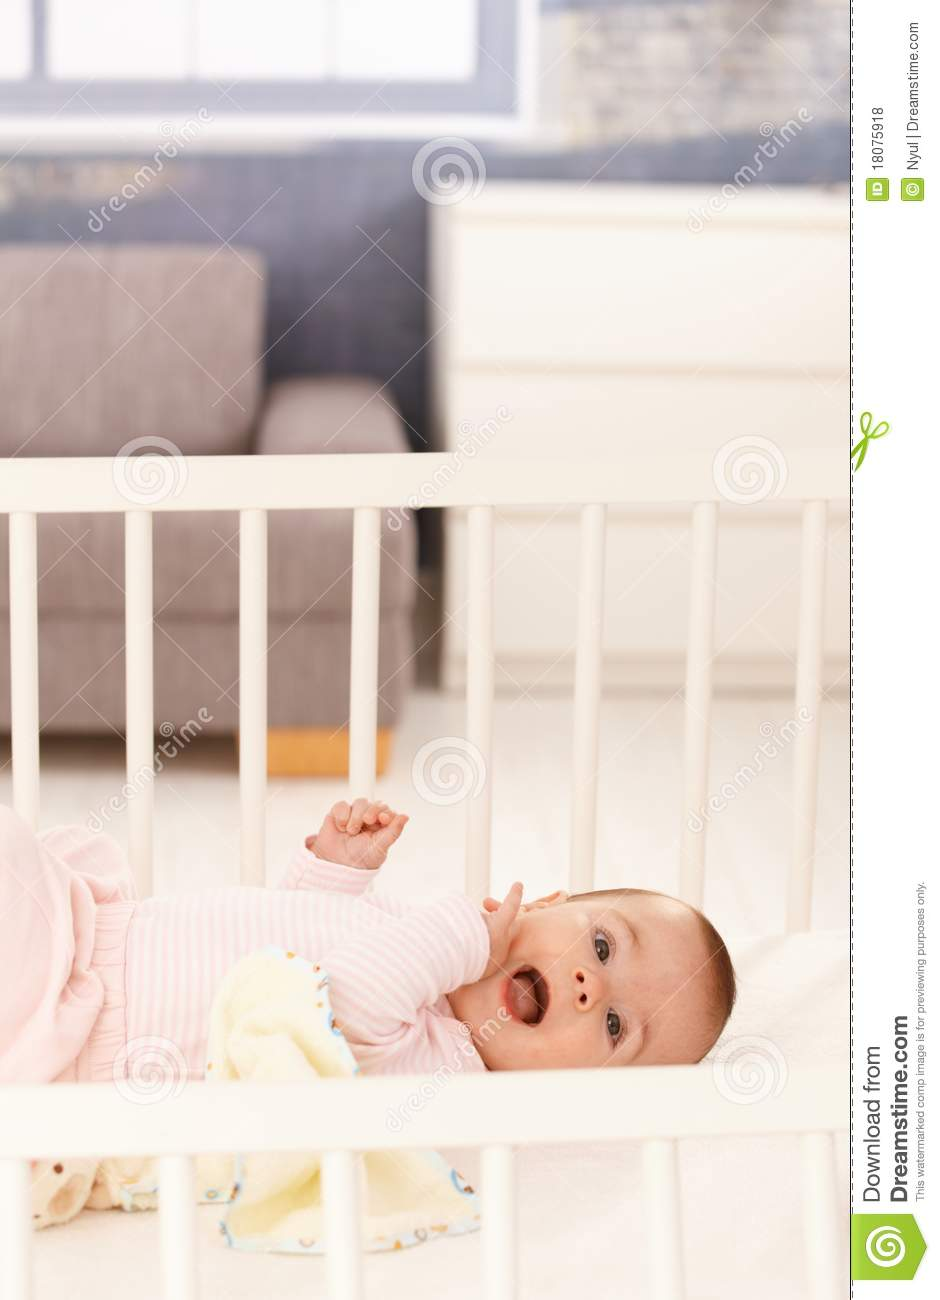 cute baby girl in crib royalty free stock photos image 18075918